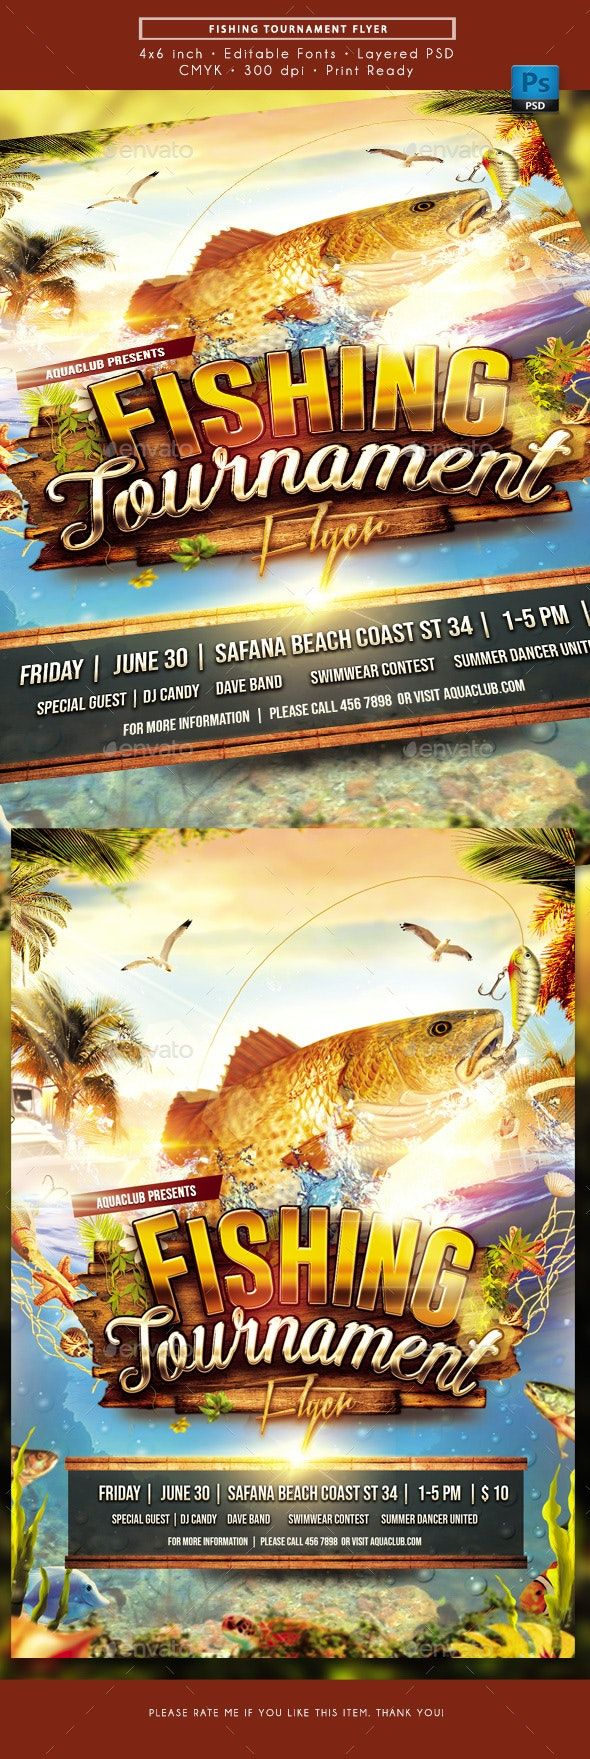 Fishing Tournament Flyer - Miscellaneous Events